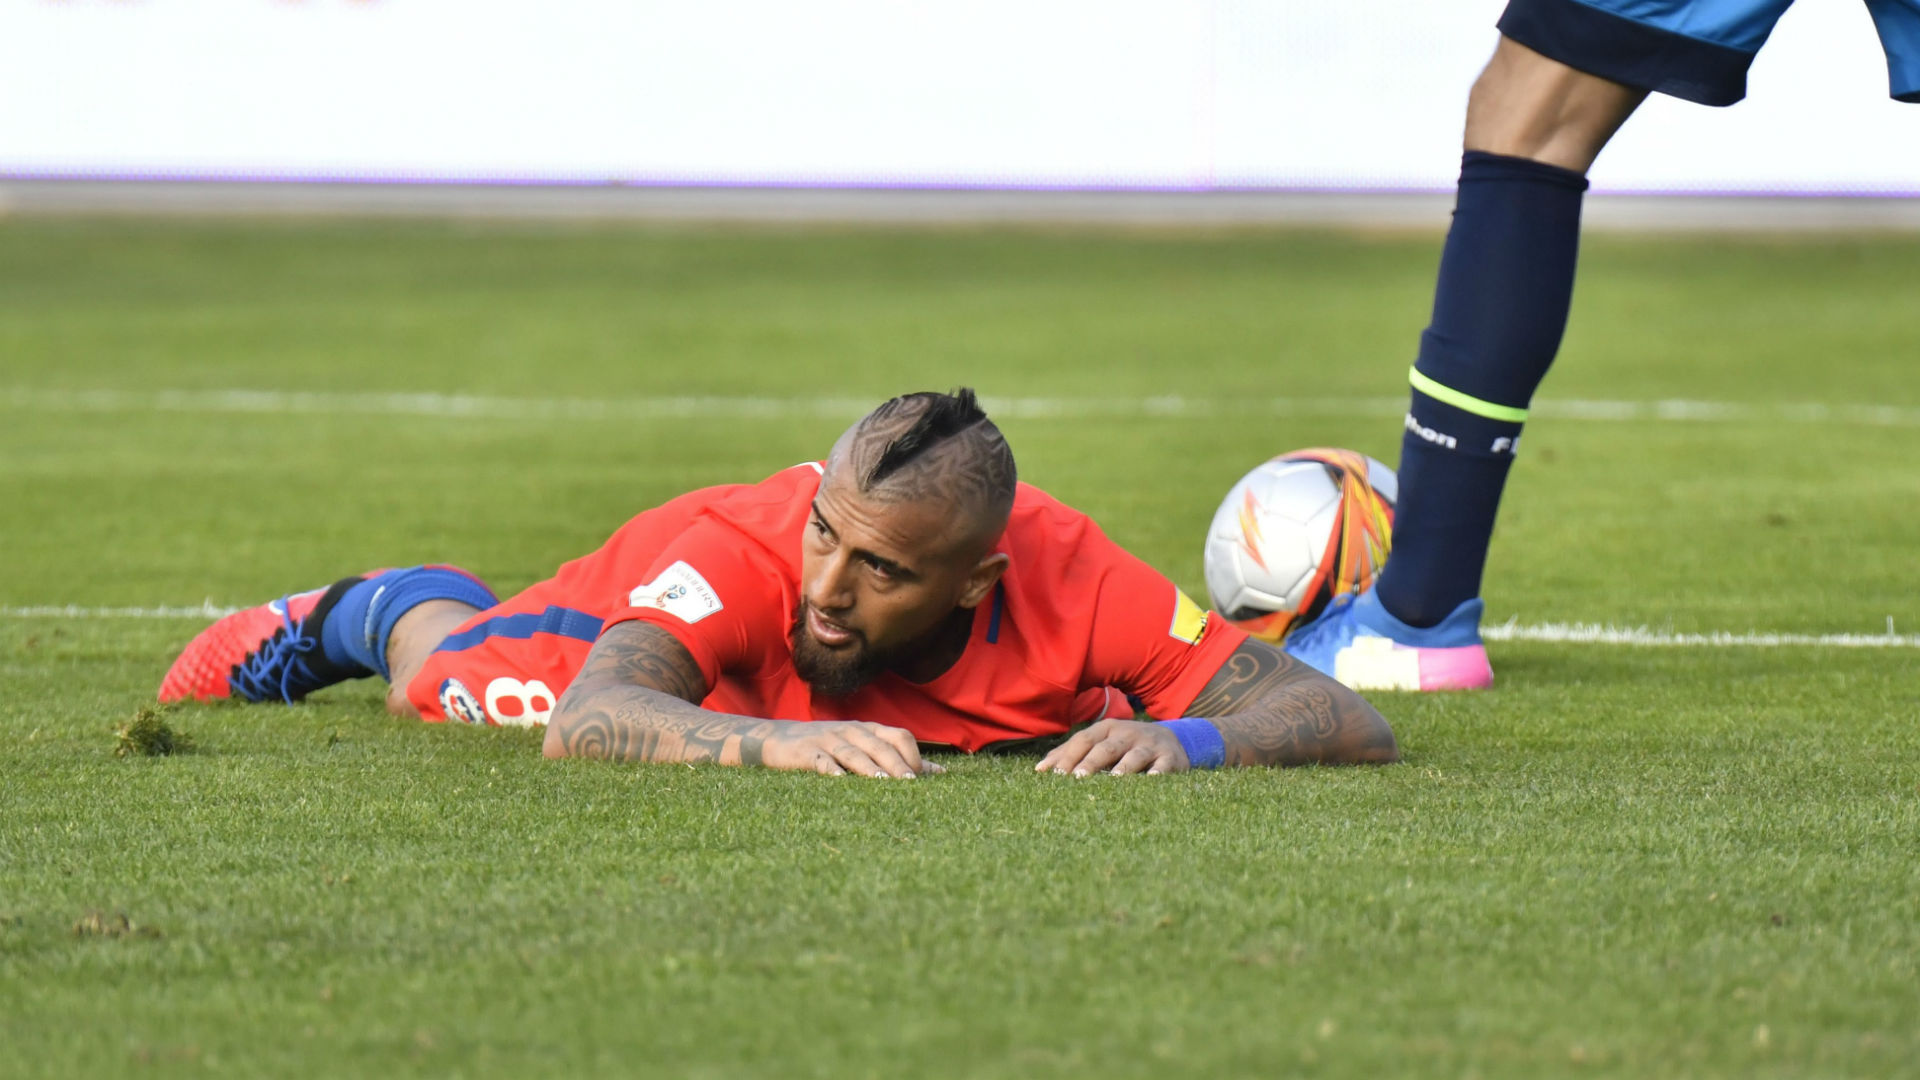 Retraite internationale imminente pour Vidal — Chili